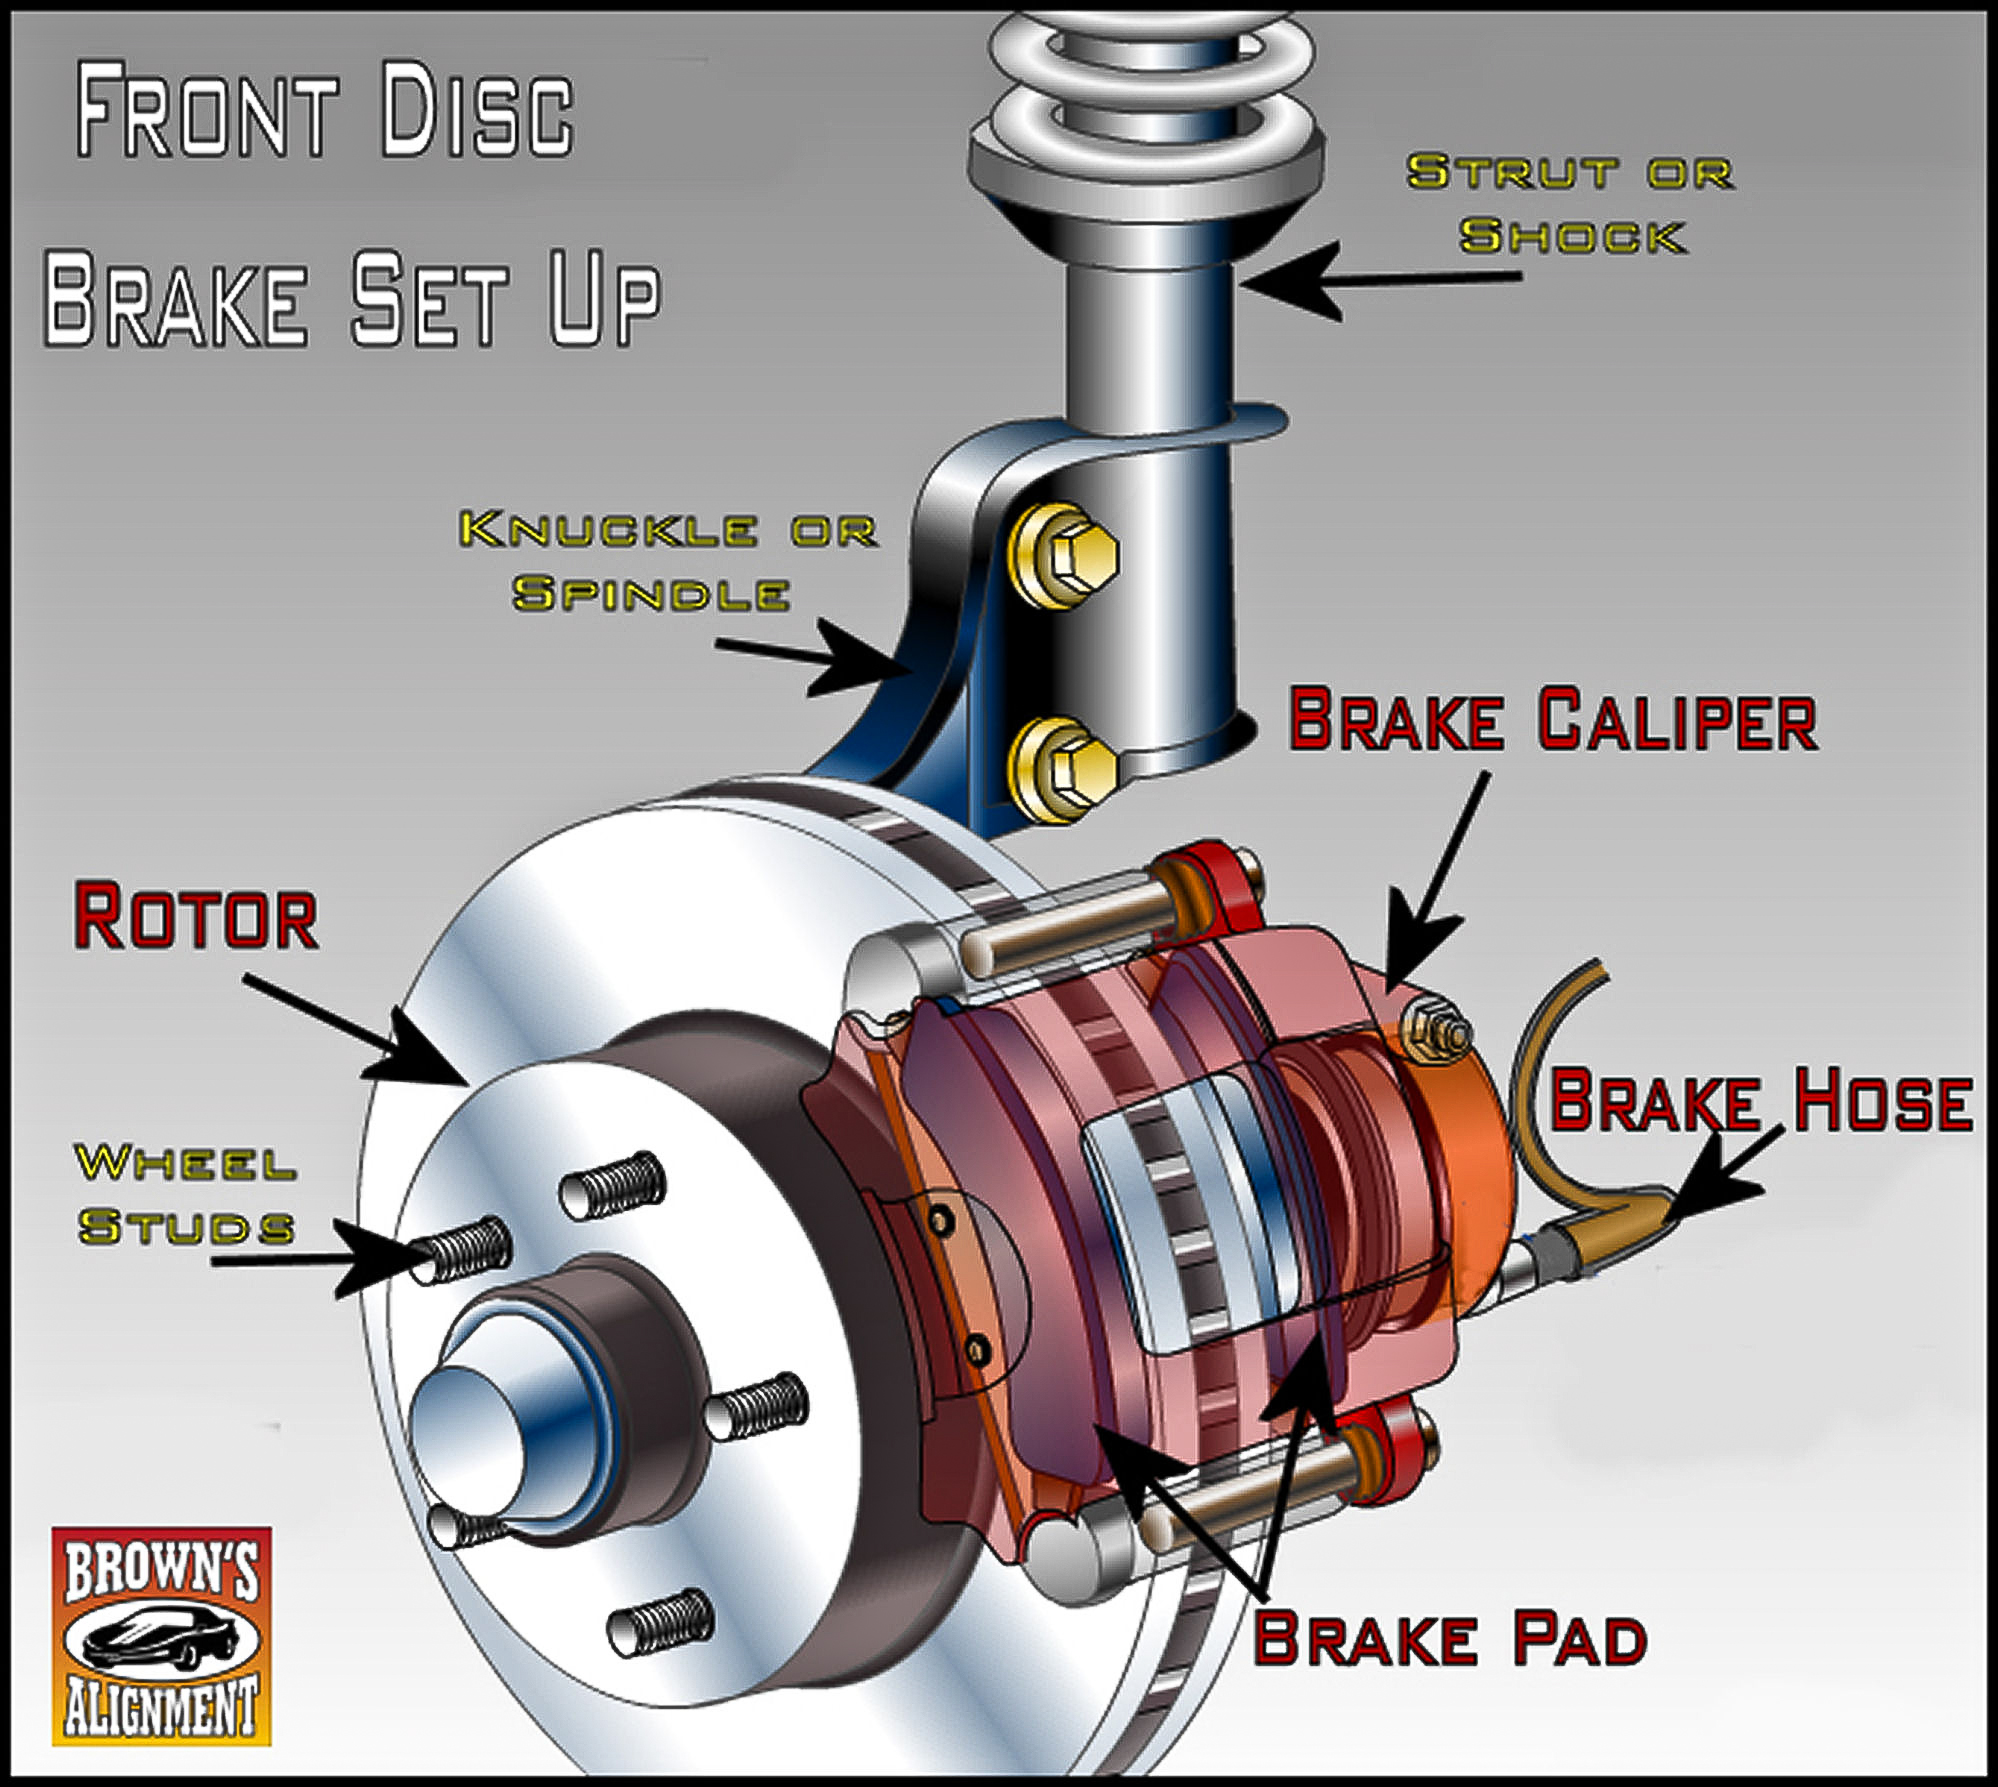 Car Brake Repair Service: What Parts Are Replaced During A Disc Brake Job?- Pawlik